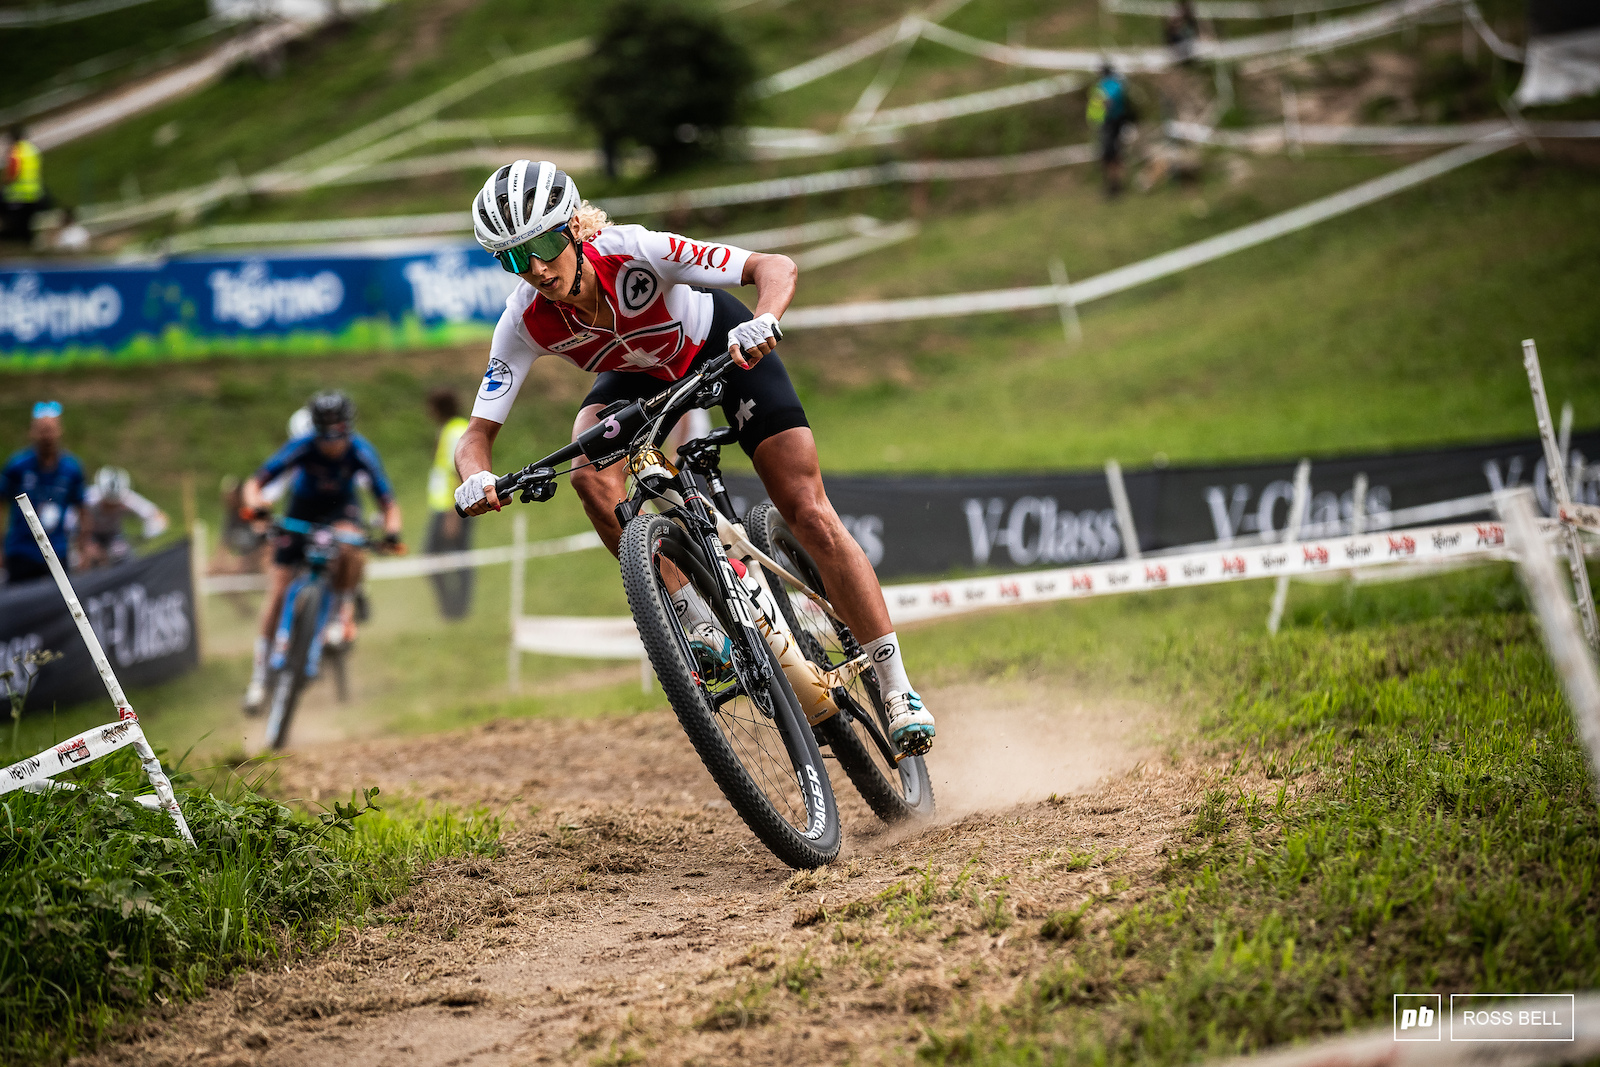 Olympic champ Jolanda Neff led the first lap but would slip back to 5th with a few mistakes.